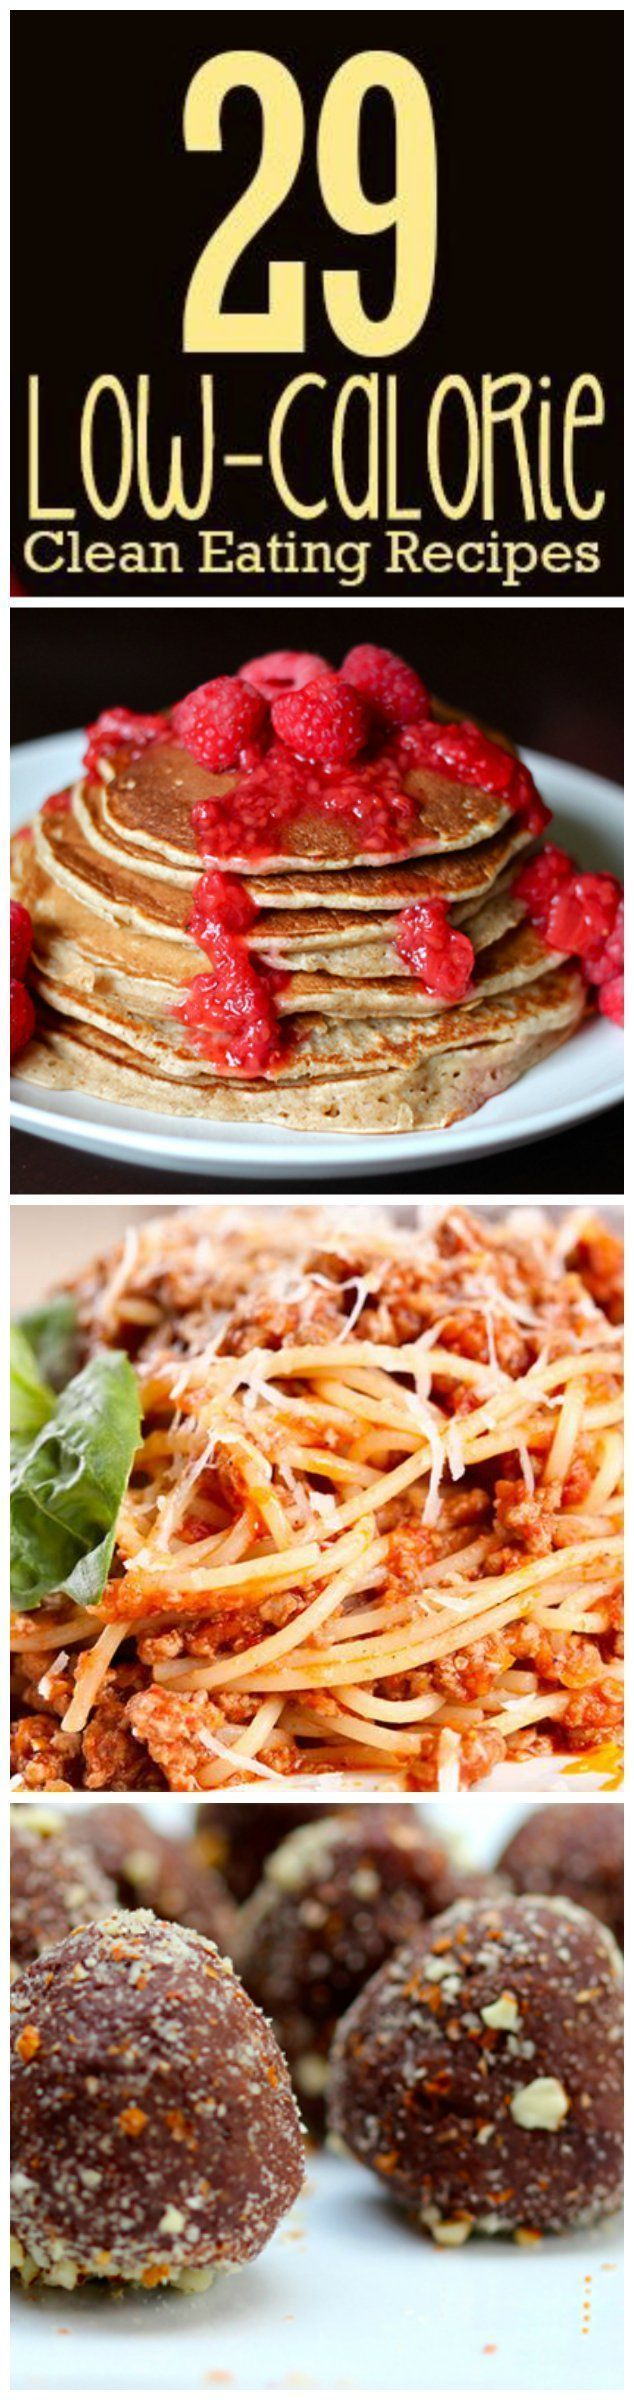 29 ways to eat clean without the empty calories! #lowcalorie #menuplanning #cleaneating